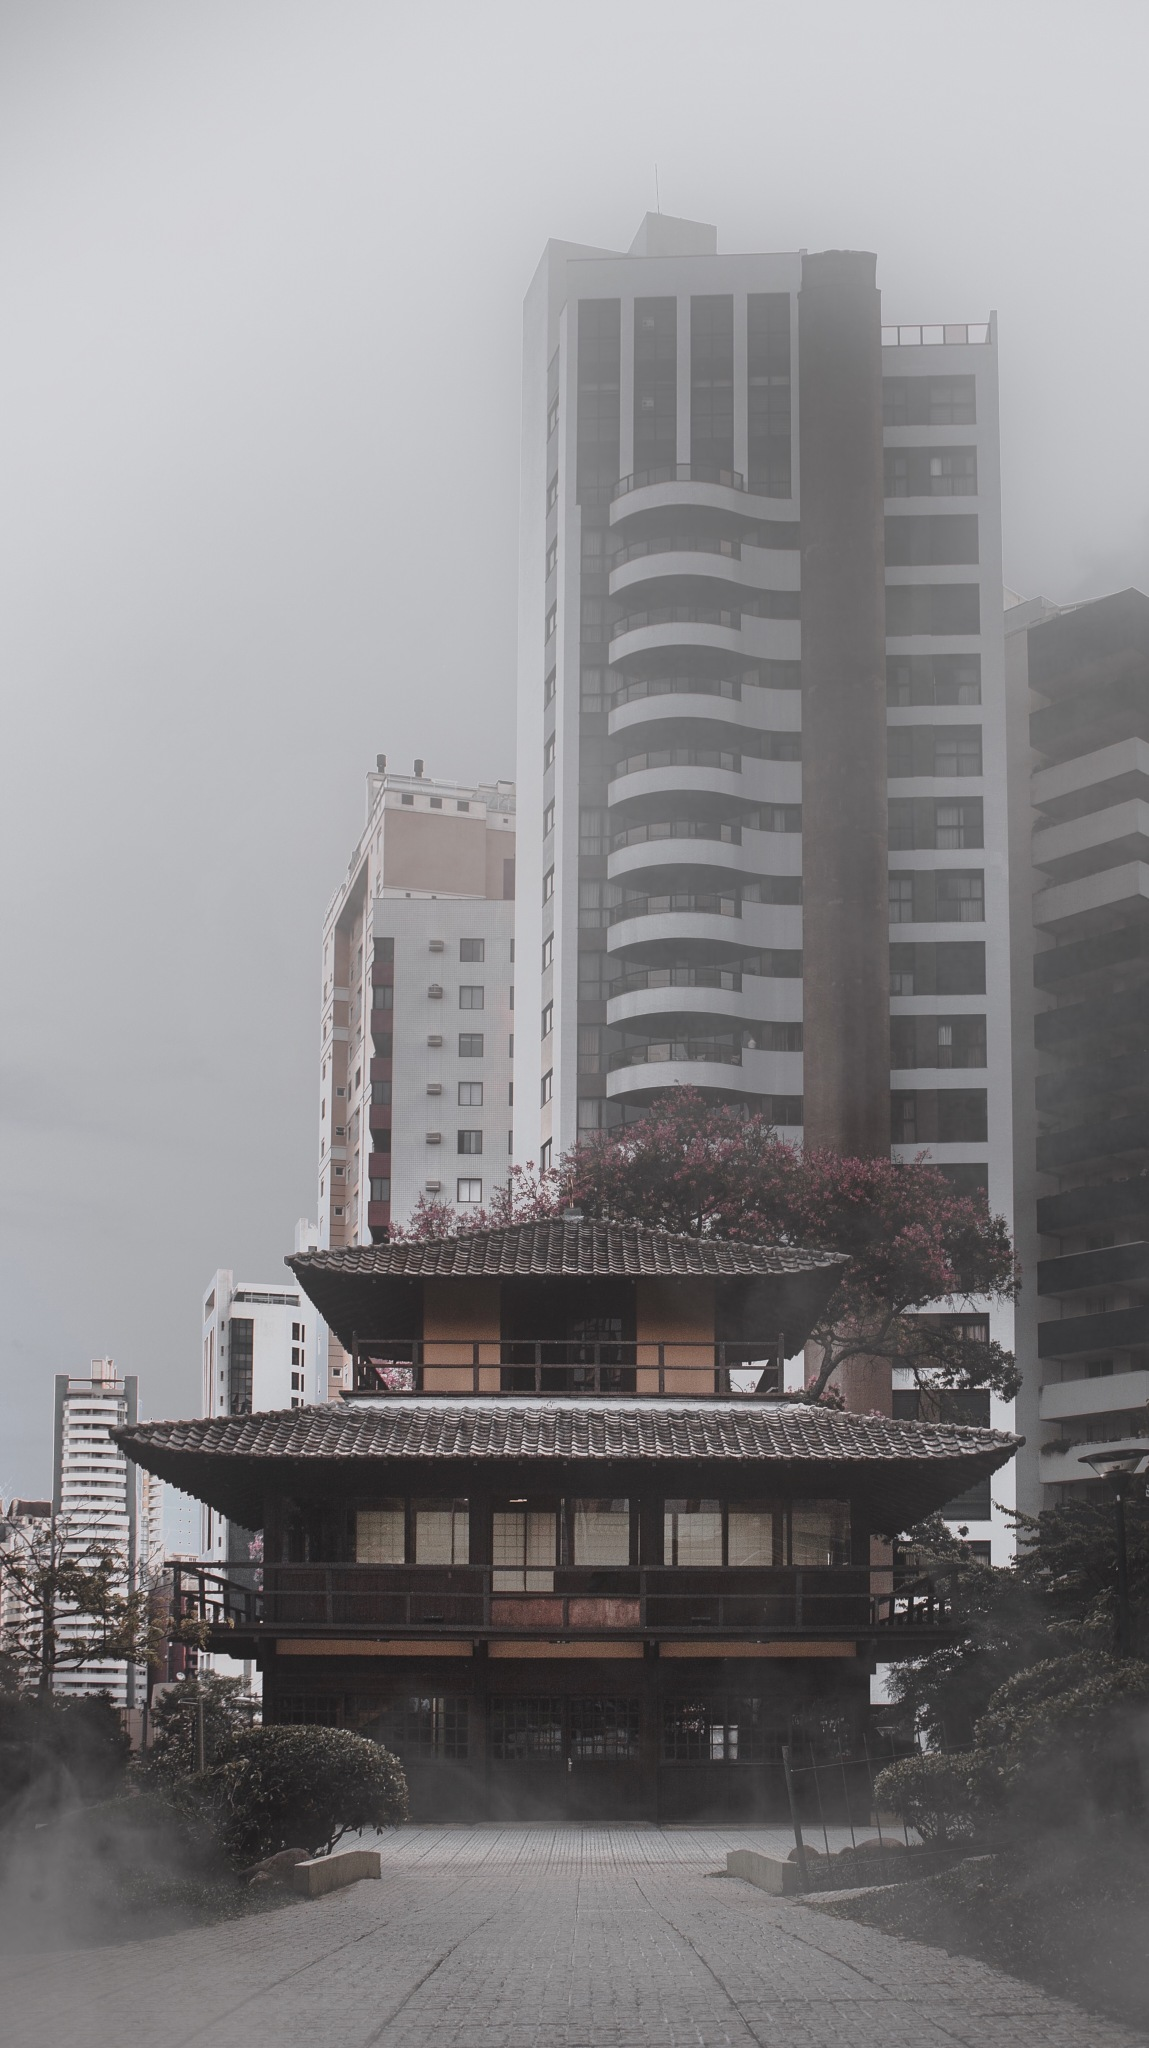 Japan Square by NickGuerra